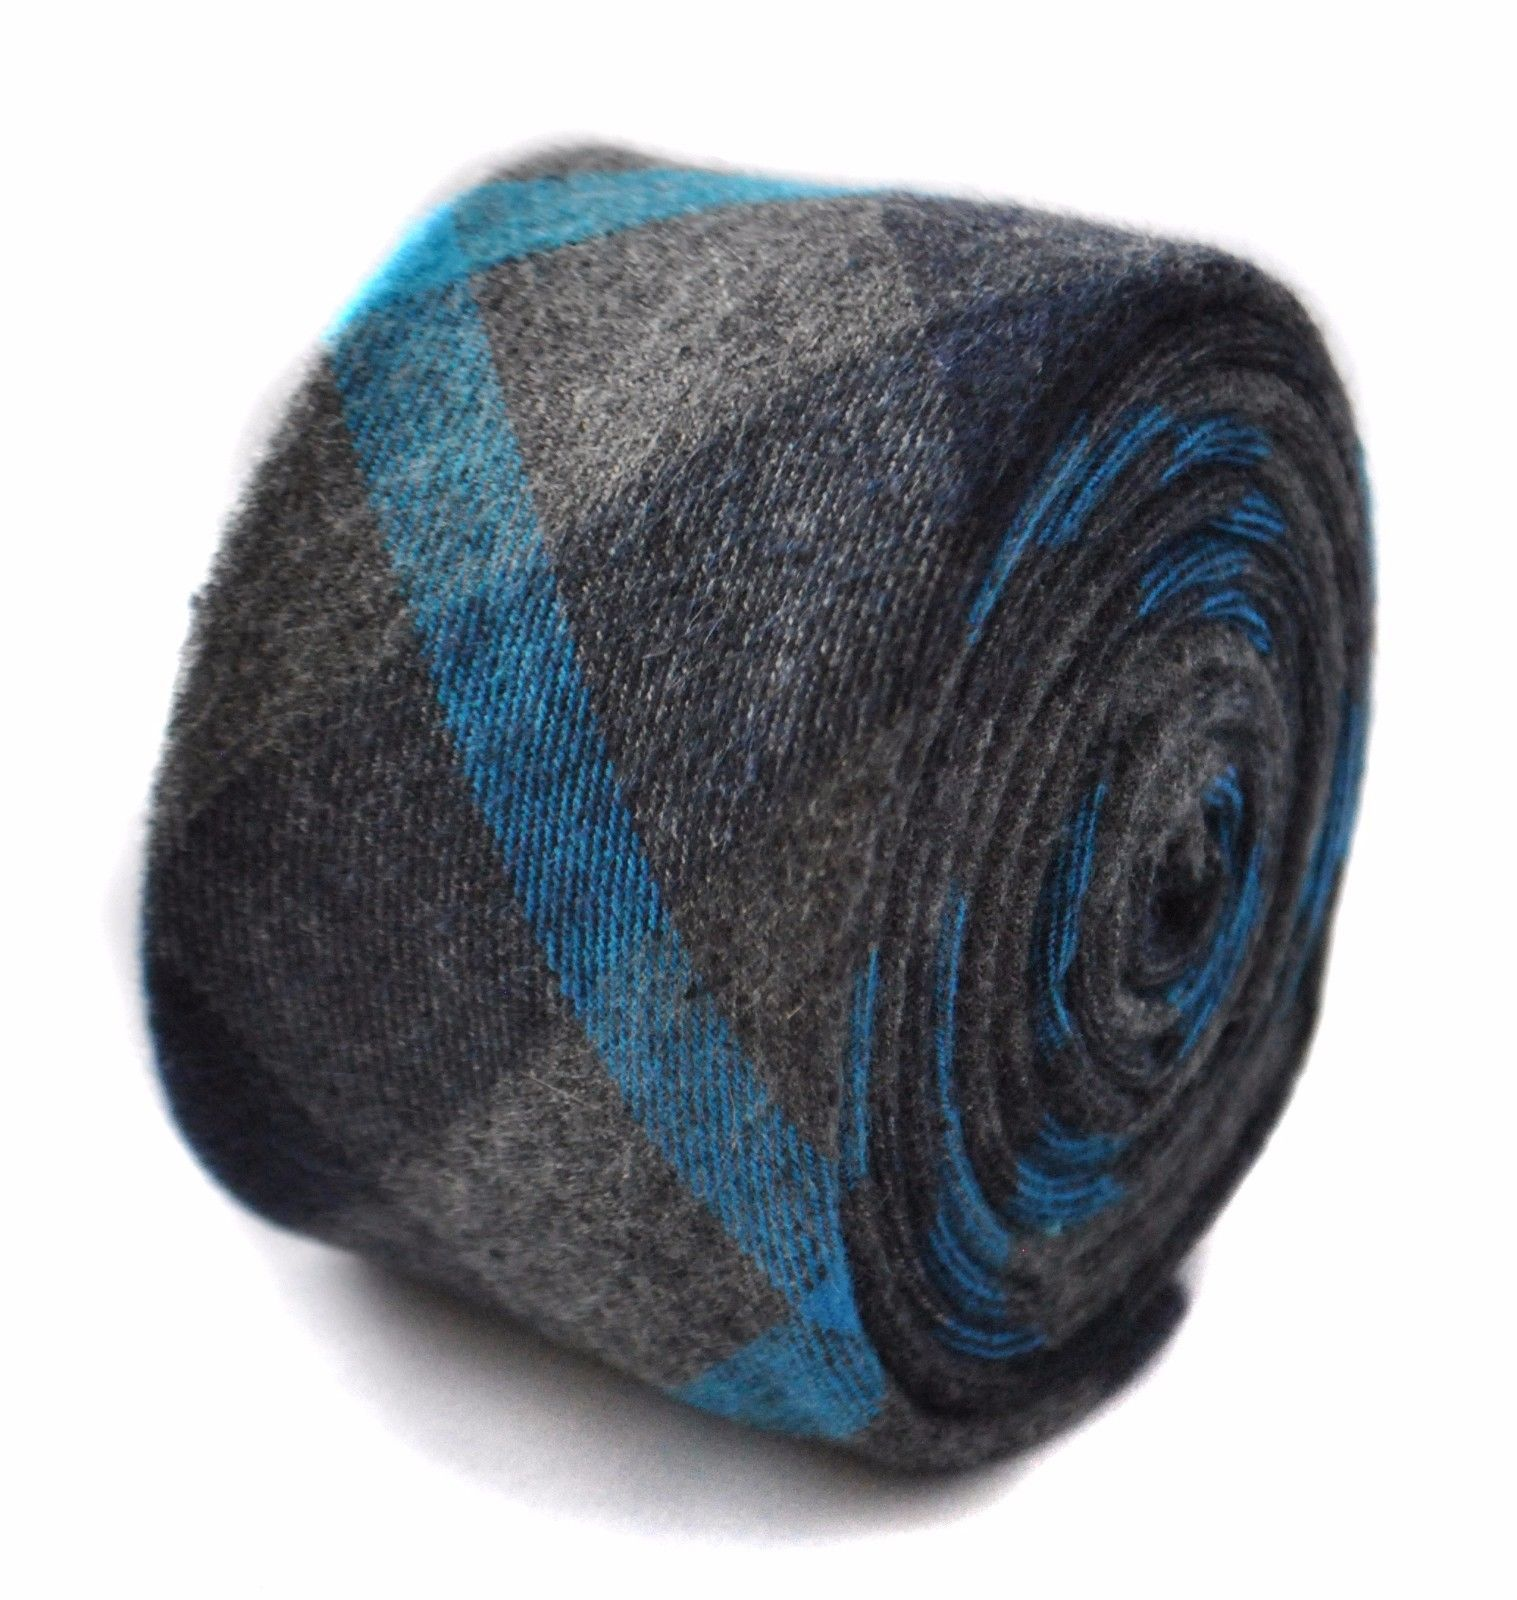 Frederick Thomas Uomo Tweed DI LANA CRAVATTA IN GRIGIE CON blu a scacchi ft1814